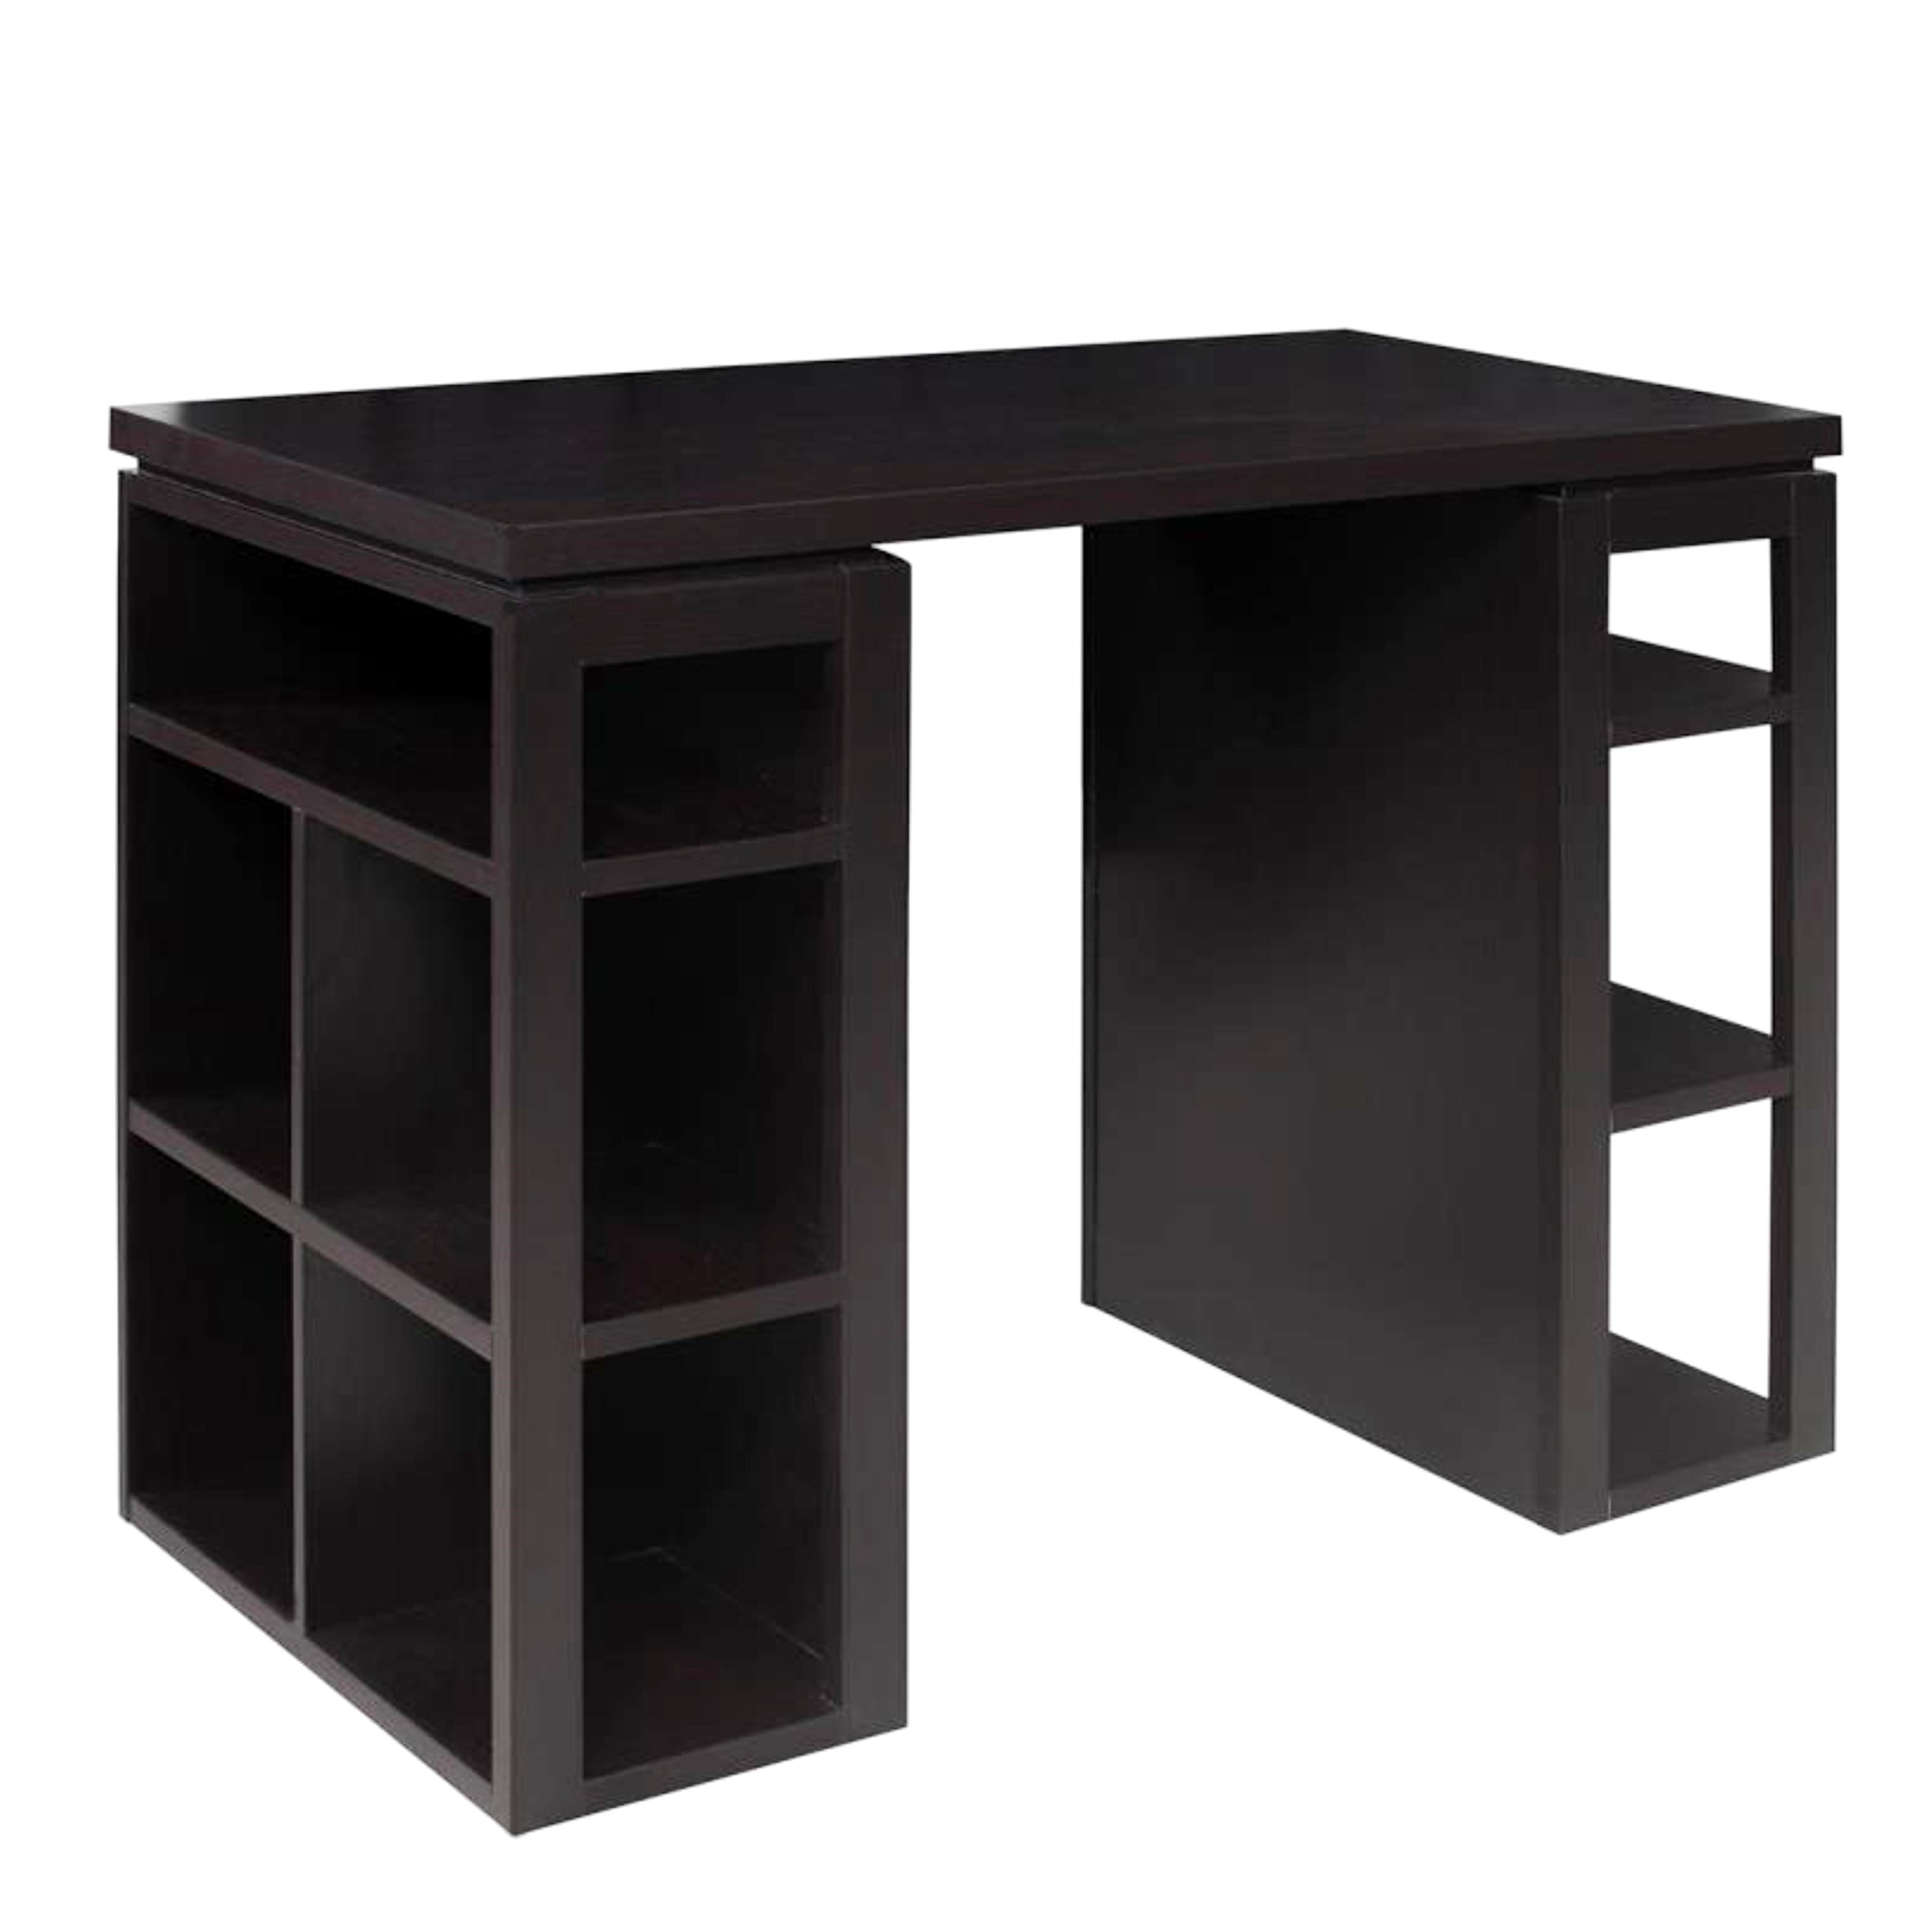 Modern Design 36 Inch Counter Height Work Station Bookcase Writing Desk Free Shipping Today 14066779